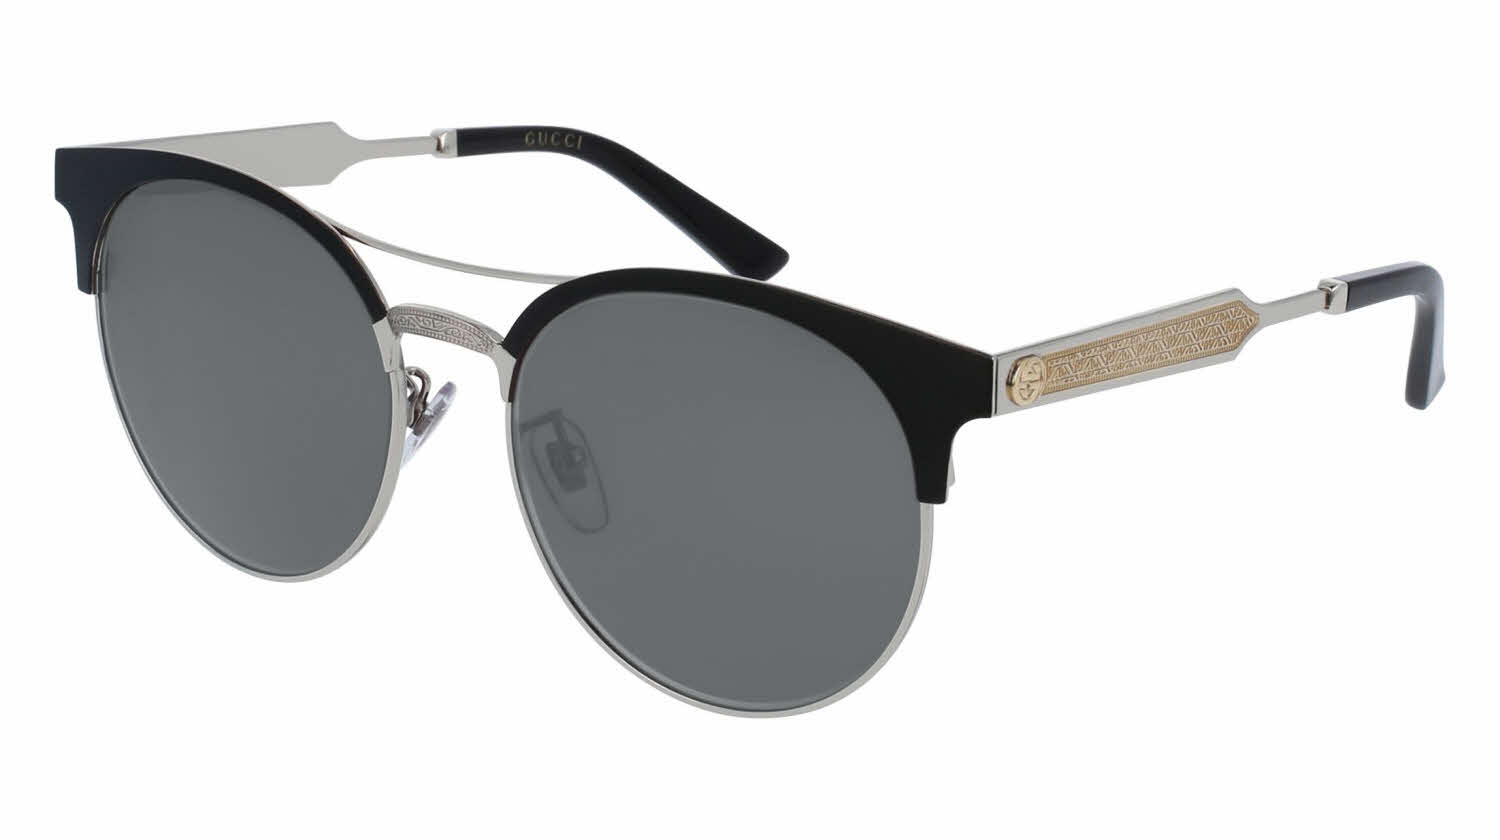 Gucci GG0075S Prescription Sunglasses